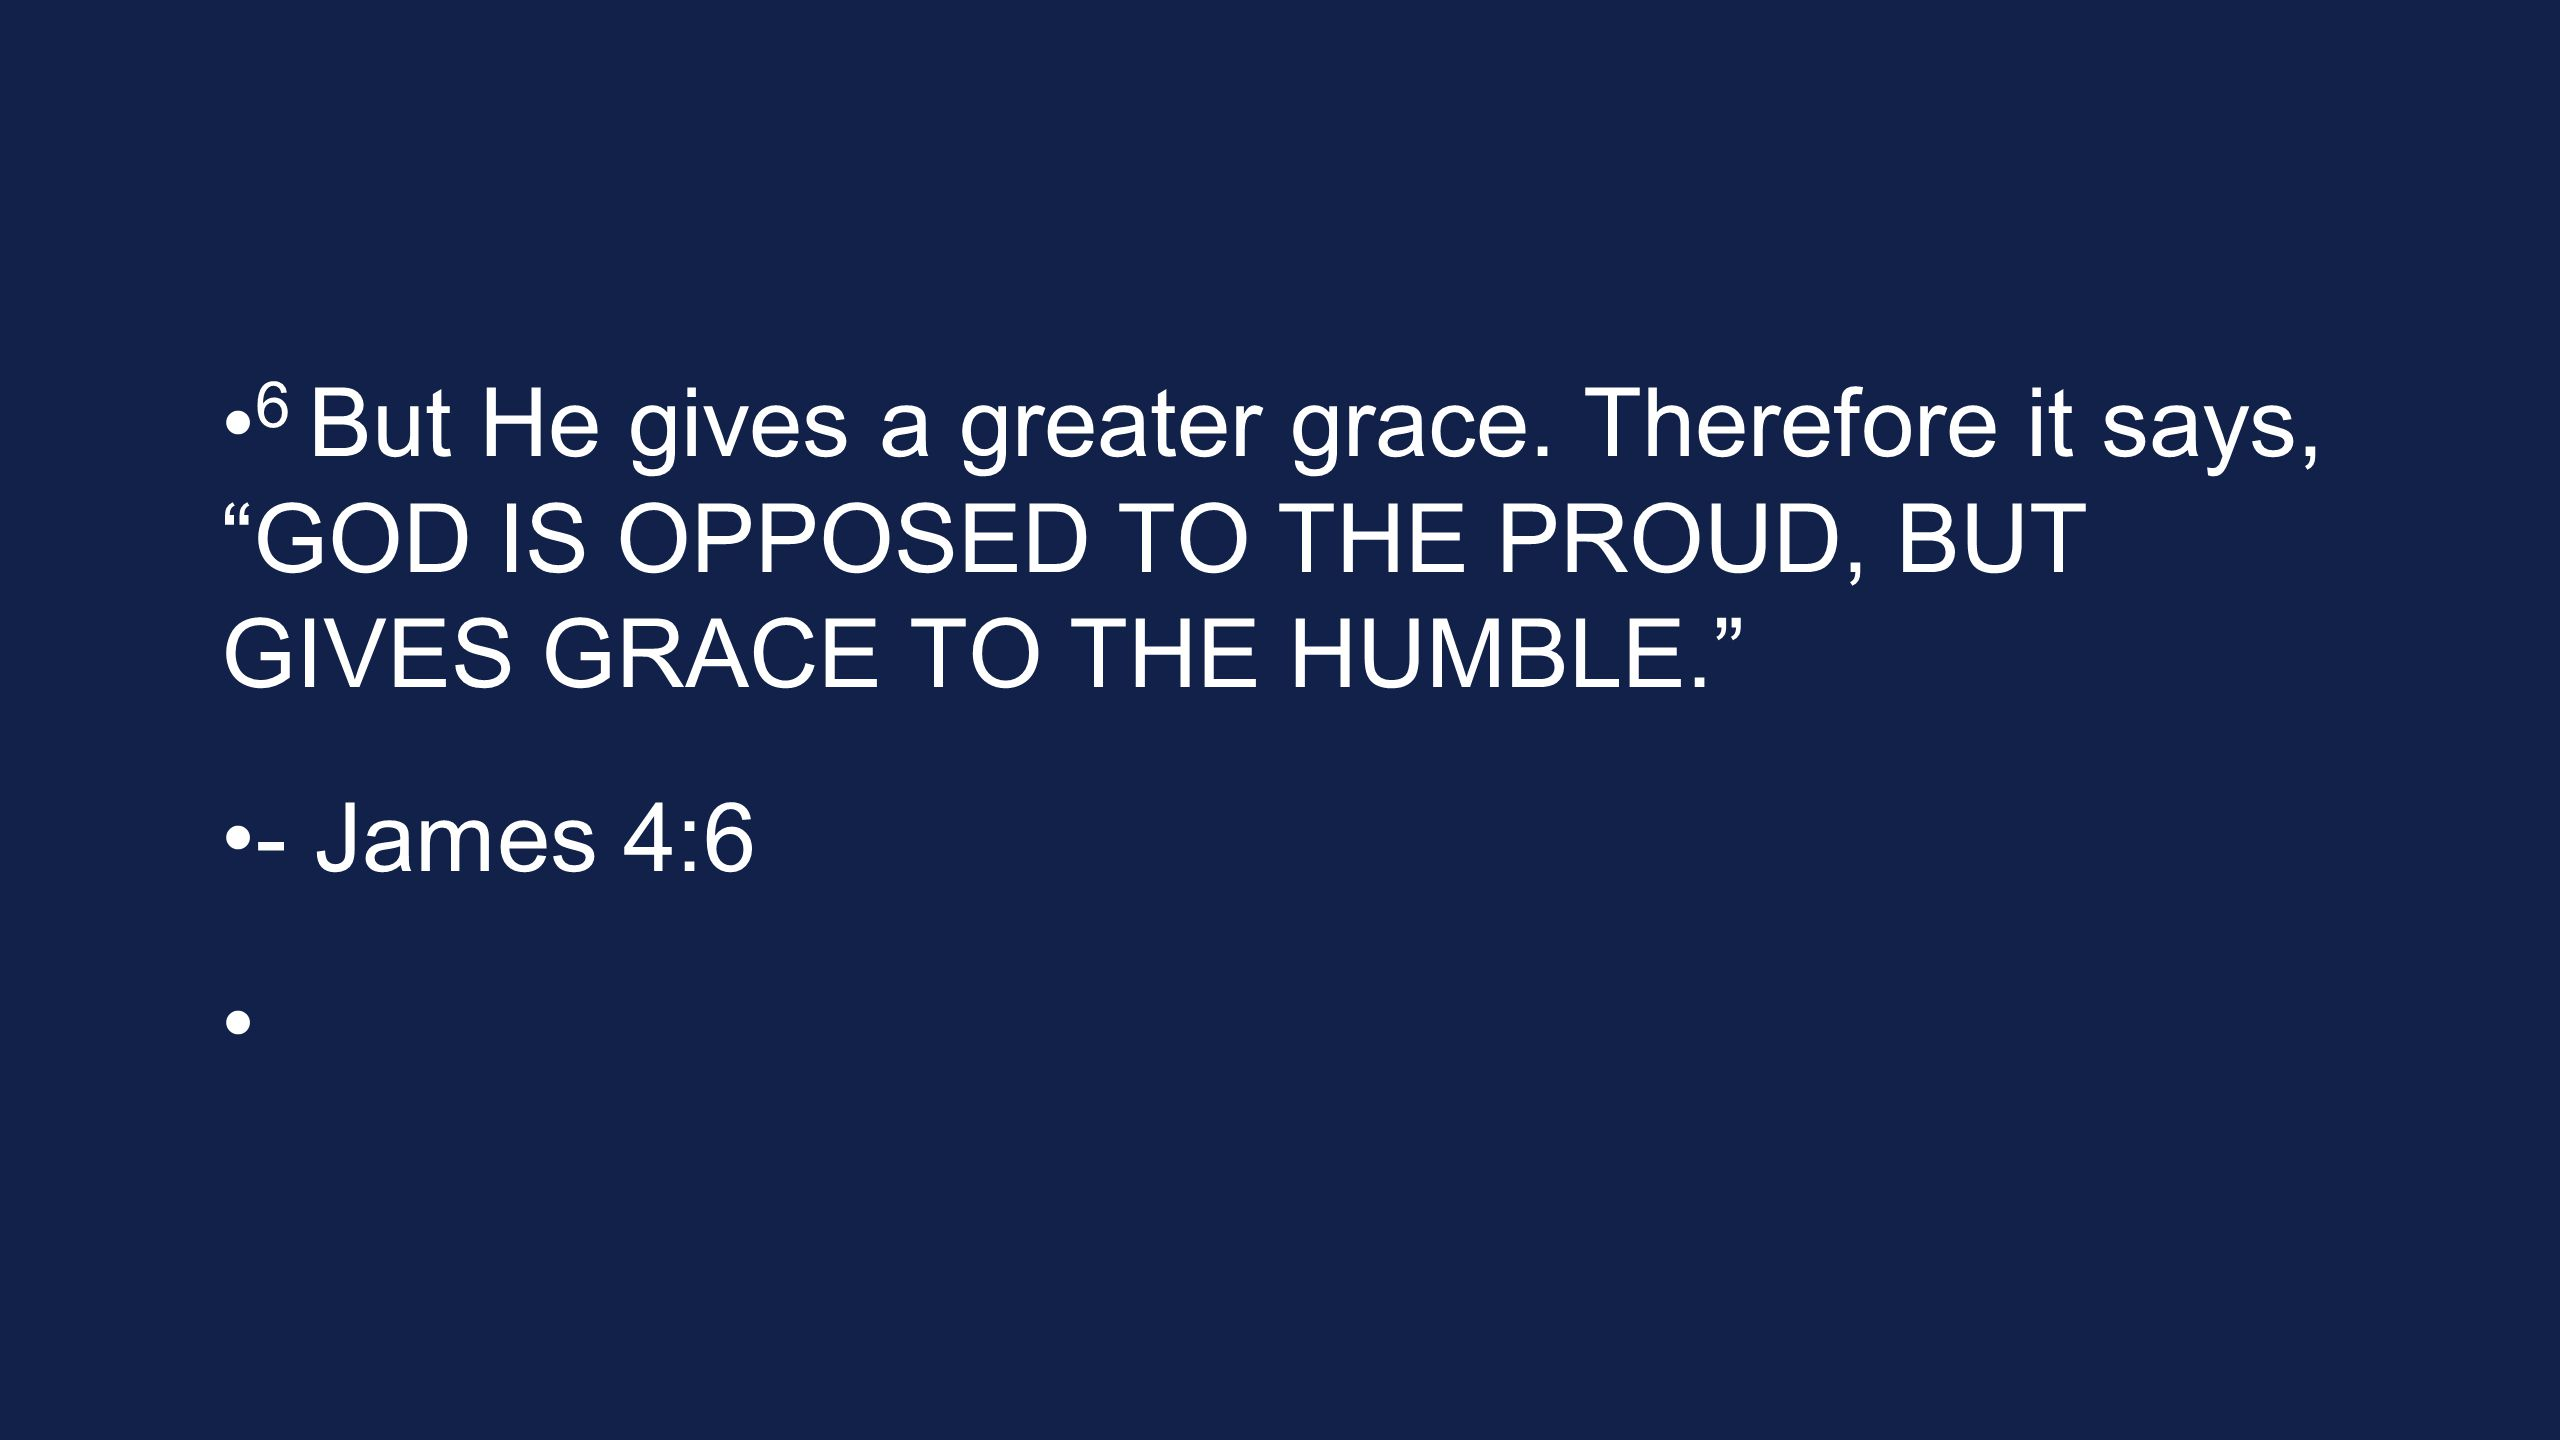 6 But He gives a greater grace.